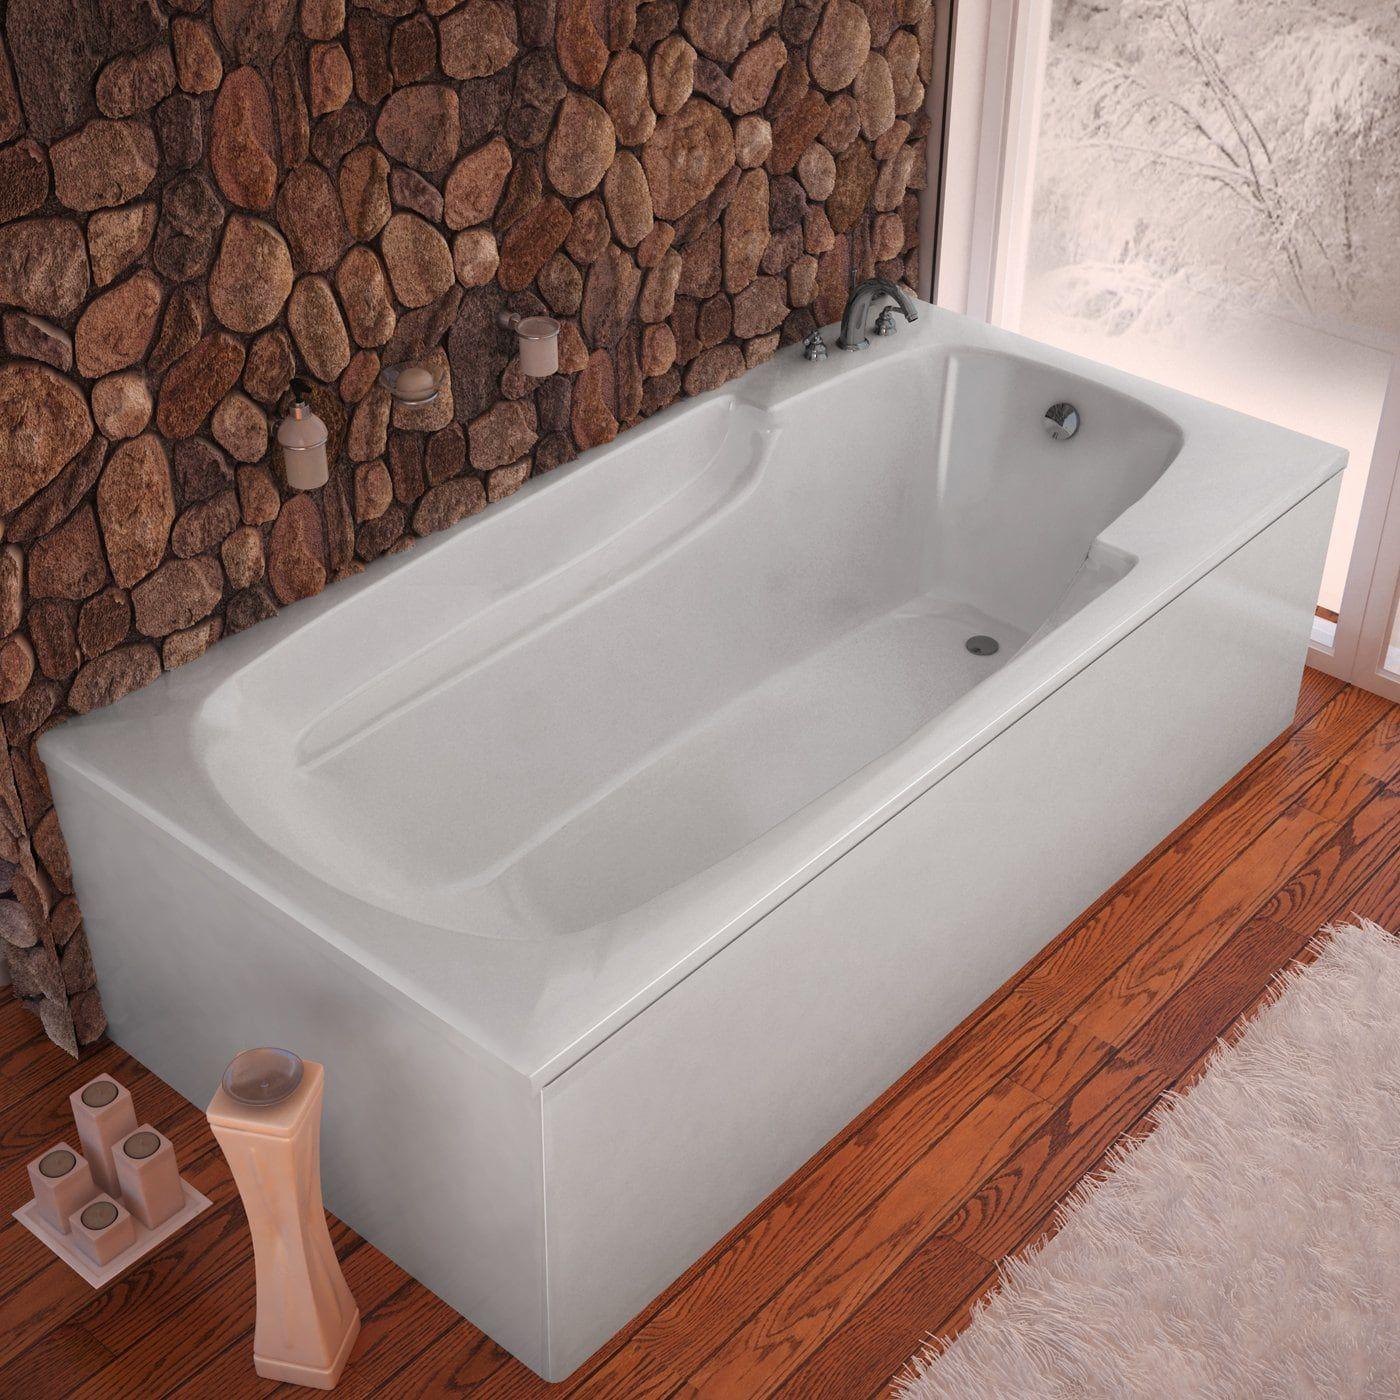 Shop Atlantis Eros Drop-in Soaking Bathtub at The Mine. Browse our ...